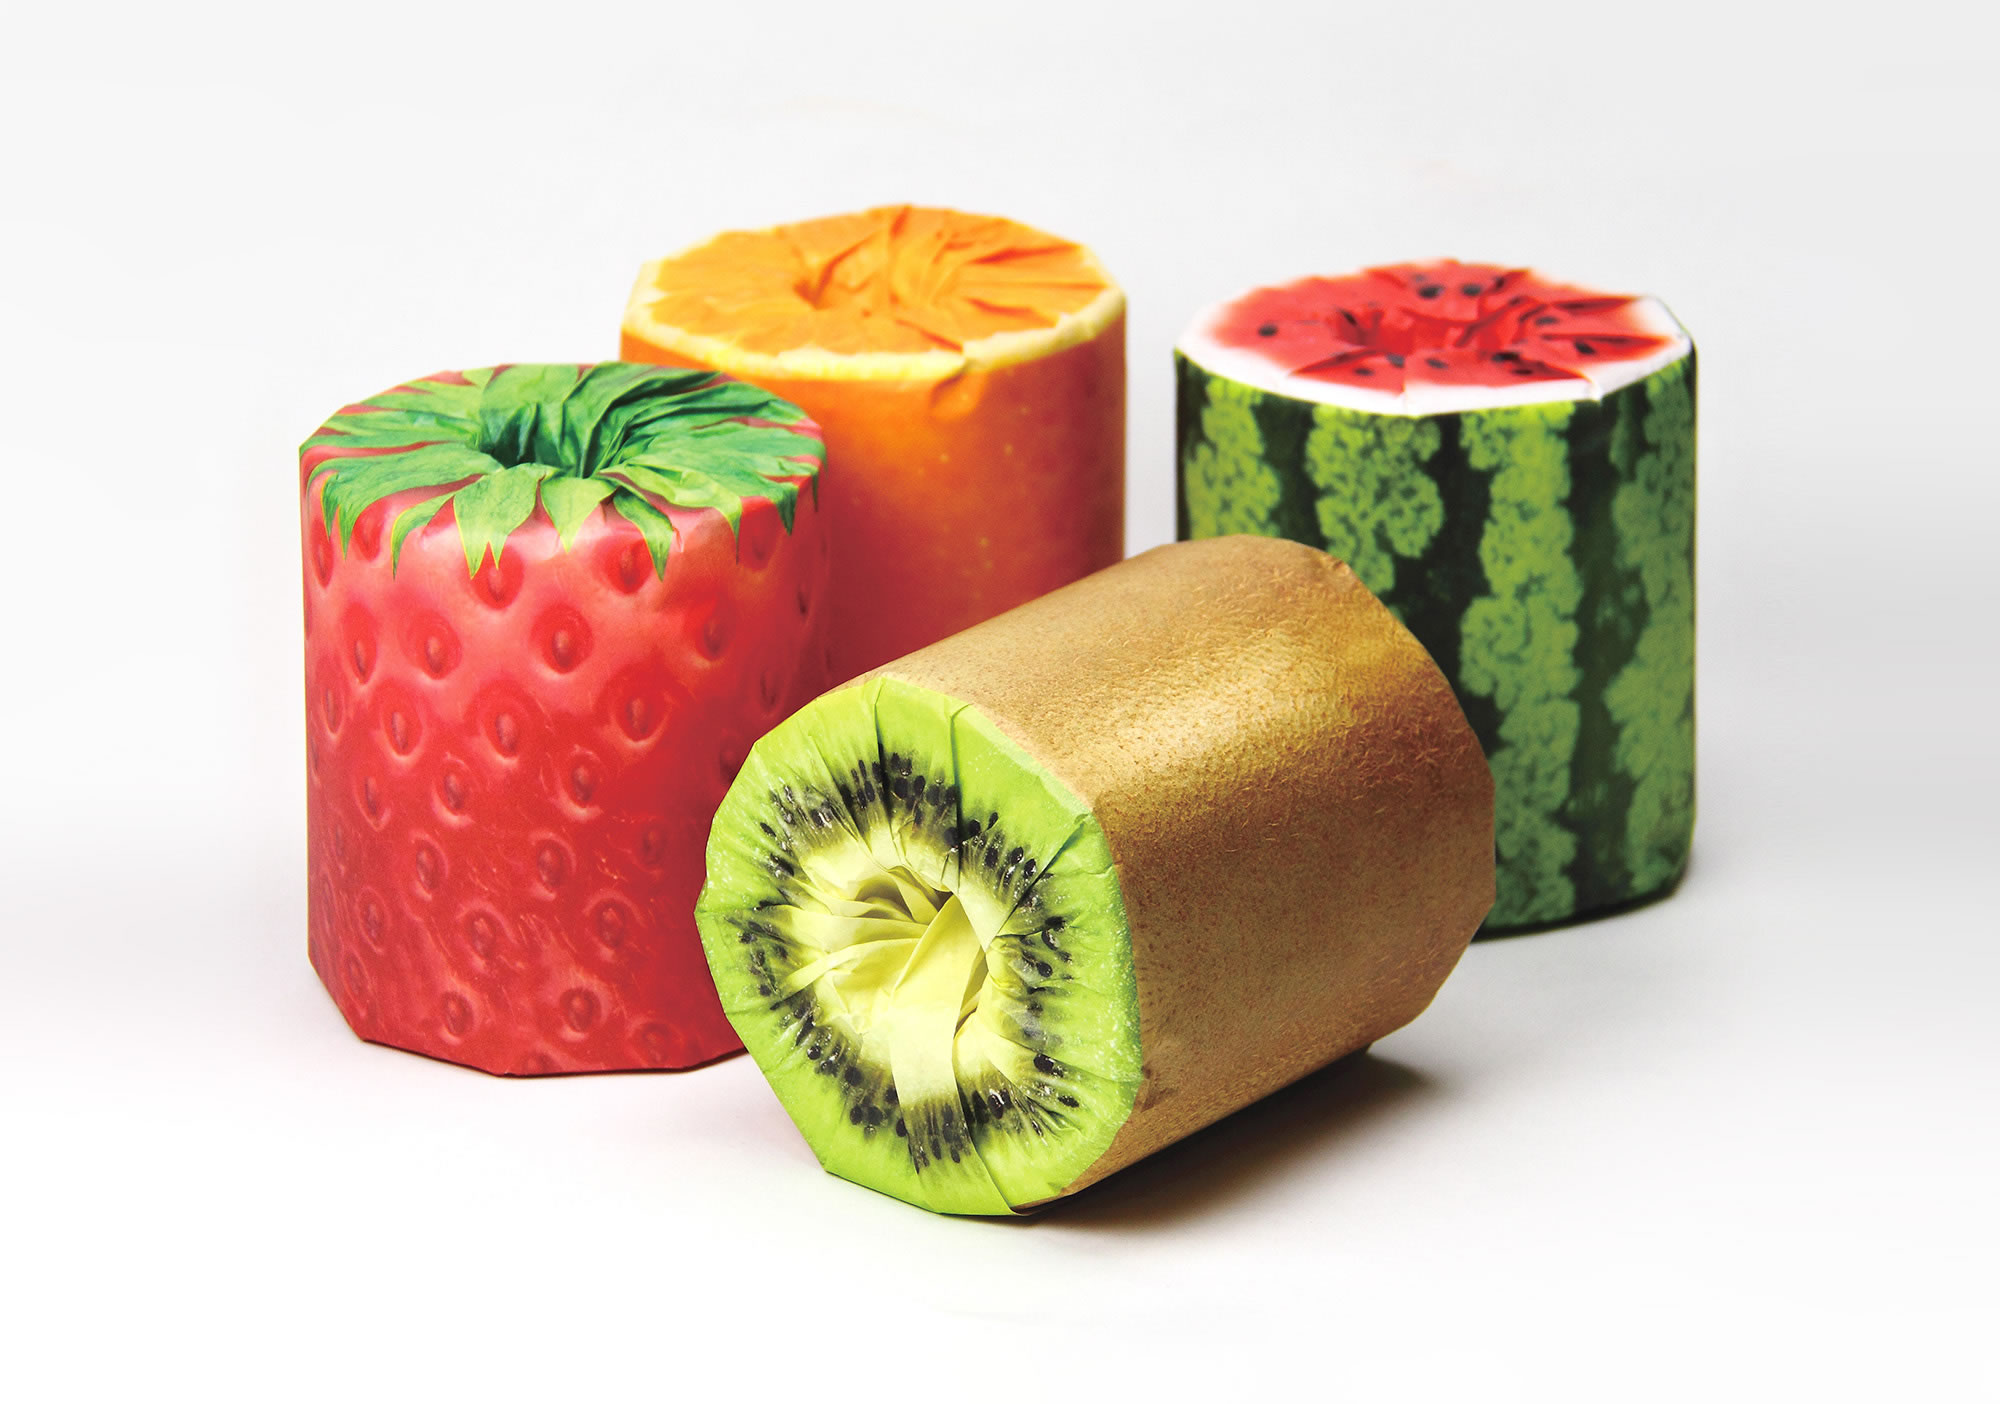 The Fruits Toilet Paper Packaging by Kazuaki Kawahara